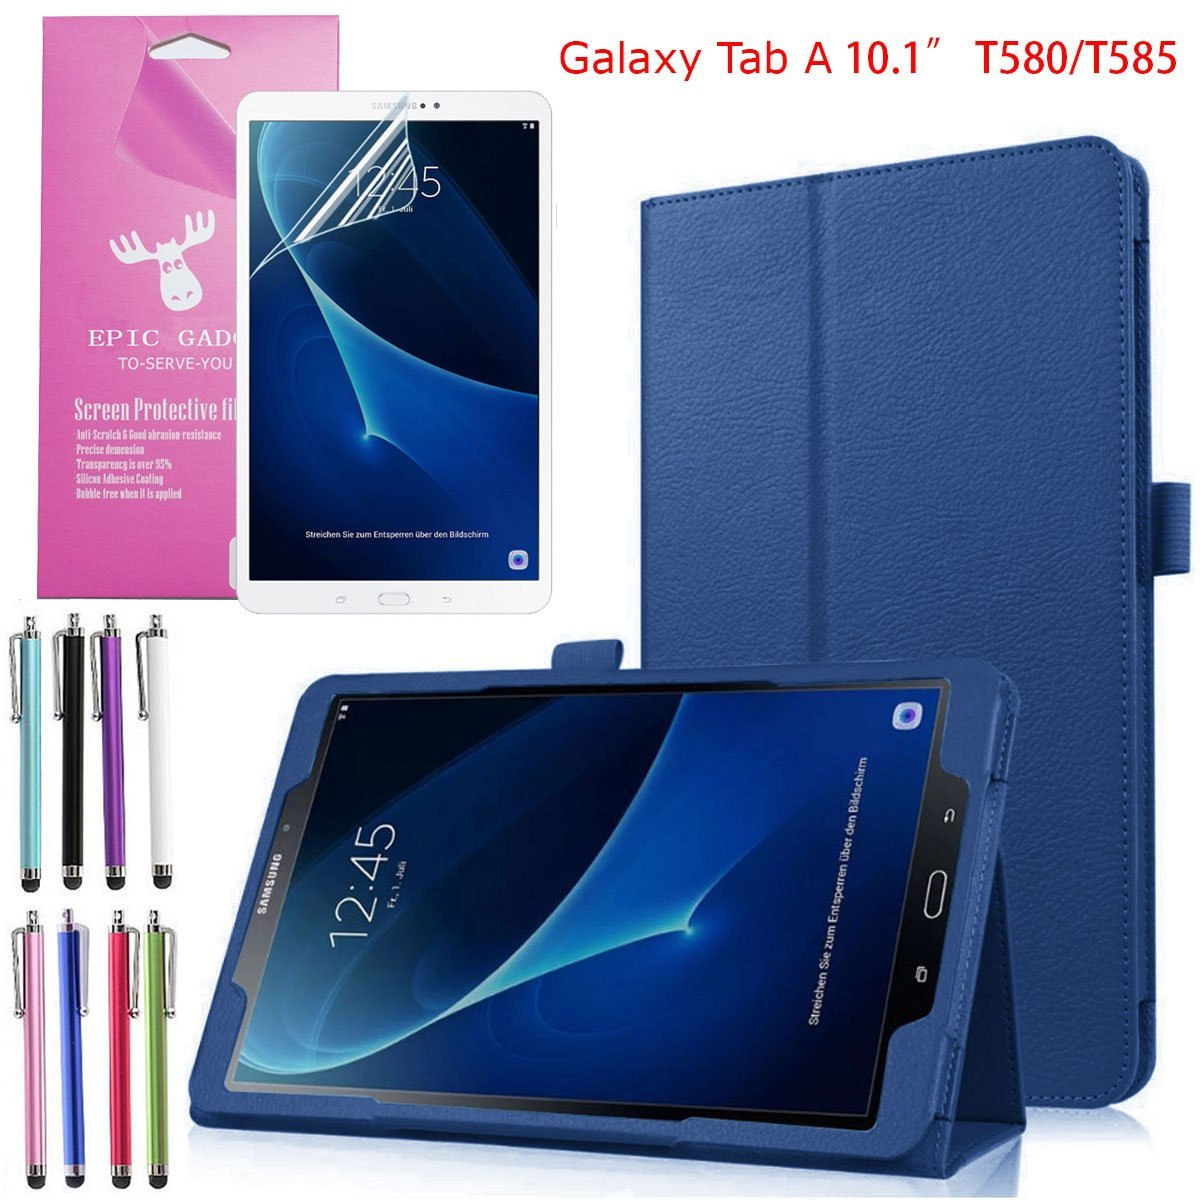 "(SM-T580/T585) Galaxy Tab A 10.1"" Folio Case, EpicGadget(TM) Lightweight Slim Smart Cover Leather Case Stand Cover with Auto Sleep/Wake for Tab A 10.1 Tablet + Tab A 10.1 Screen Protector (Navy Blue)"